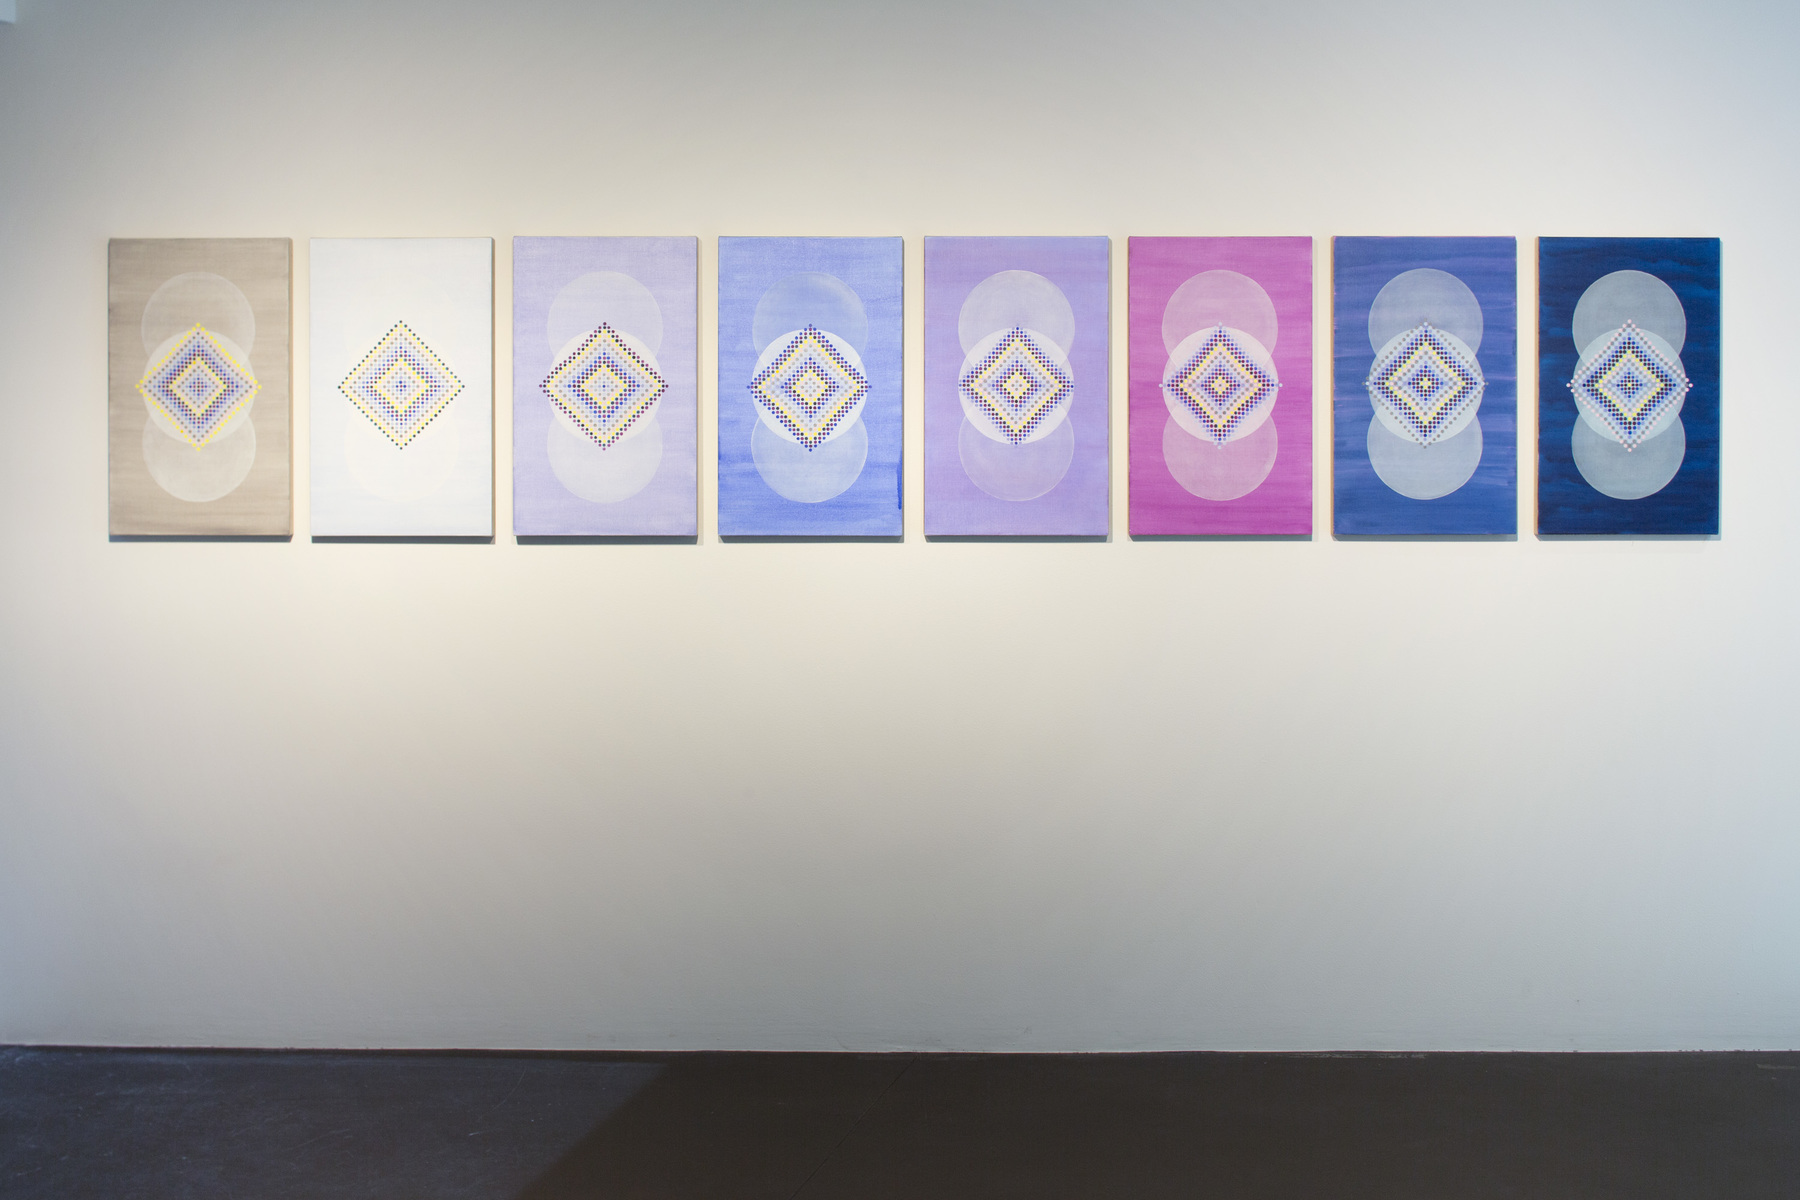 Hours Series Installation view, Sixfold Symmetry: Pattern in Art and Science, Tang Teaching Museum at Skidmore College